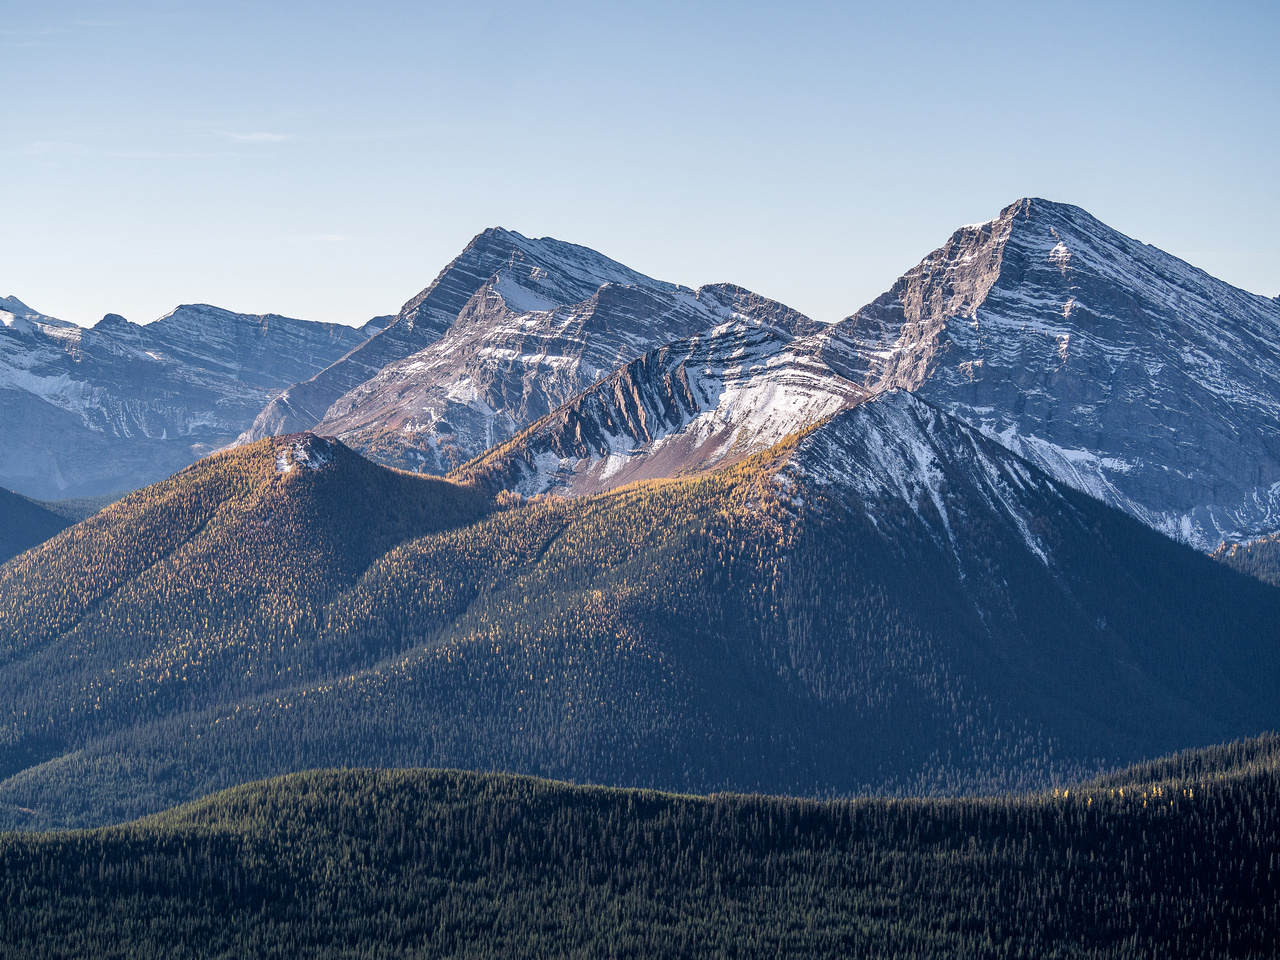 Mount McPhail at left center with Horned to the right and Bishop at far right.